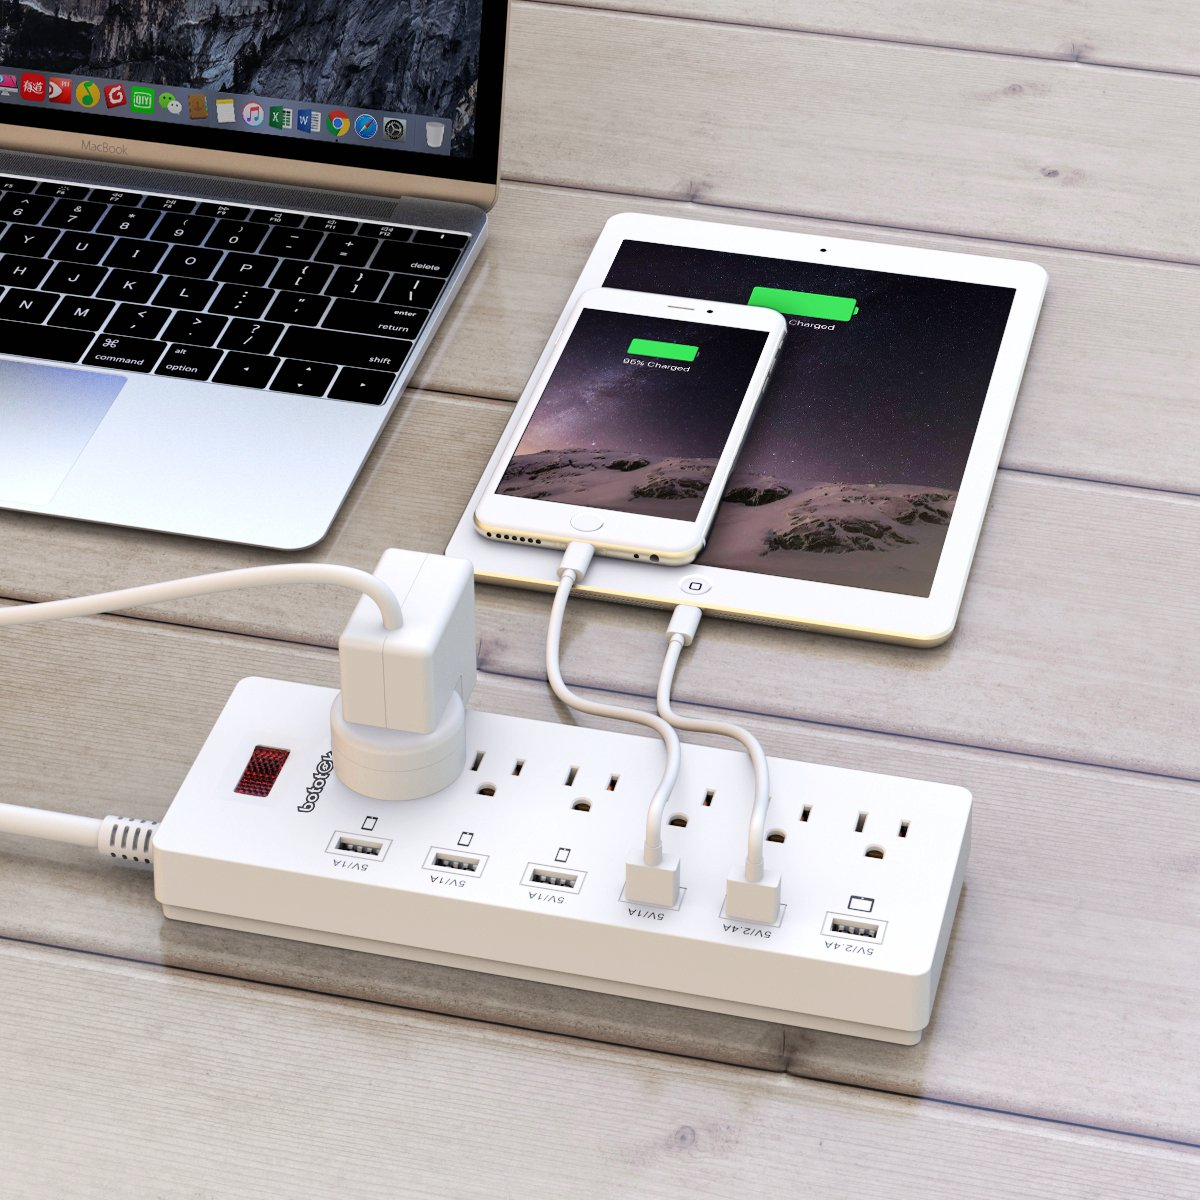 Power Strip,Bototek Surge Protector 4-Port USB Charging Ports and 4 AC Outlets,1250W USB Power Strip with 6 Feet Long Cord for Smartphone Tablets Home,Office /& Hotel White